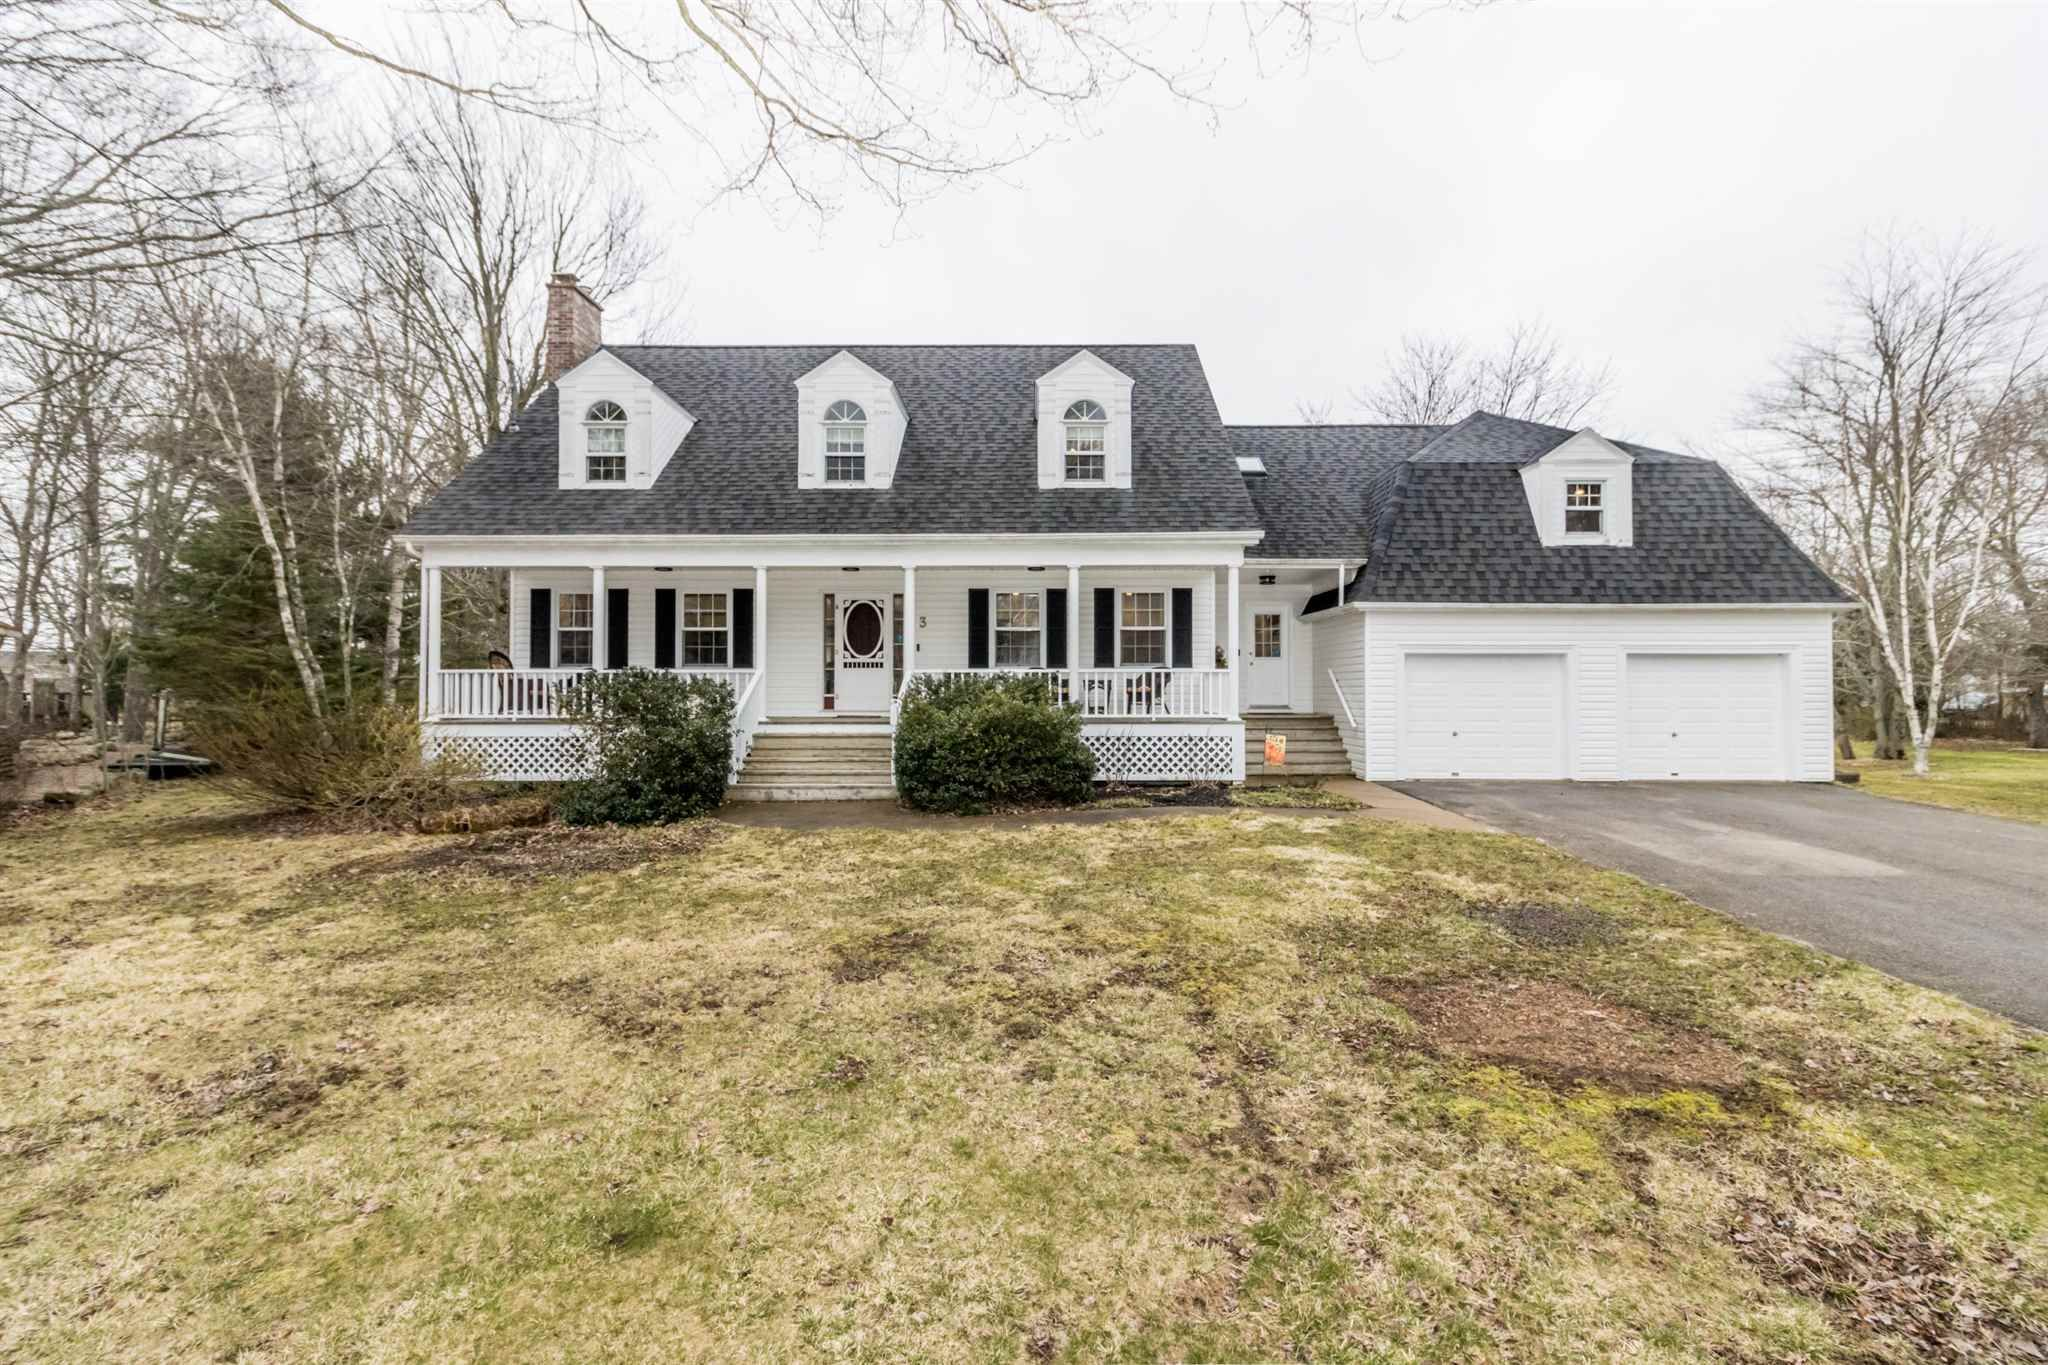 Main Photo: 3 Birch Lane in Middleton: 400-Annapolis County Residential for sale (Annapolis Valley)  : MLS®# 202107218